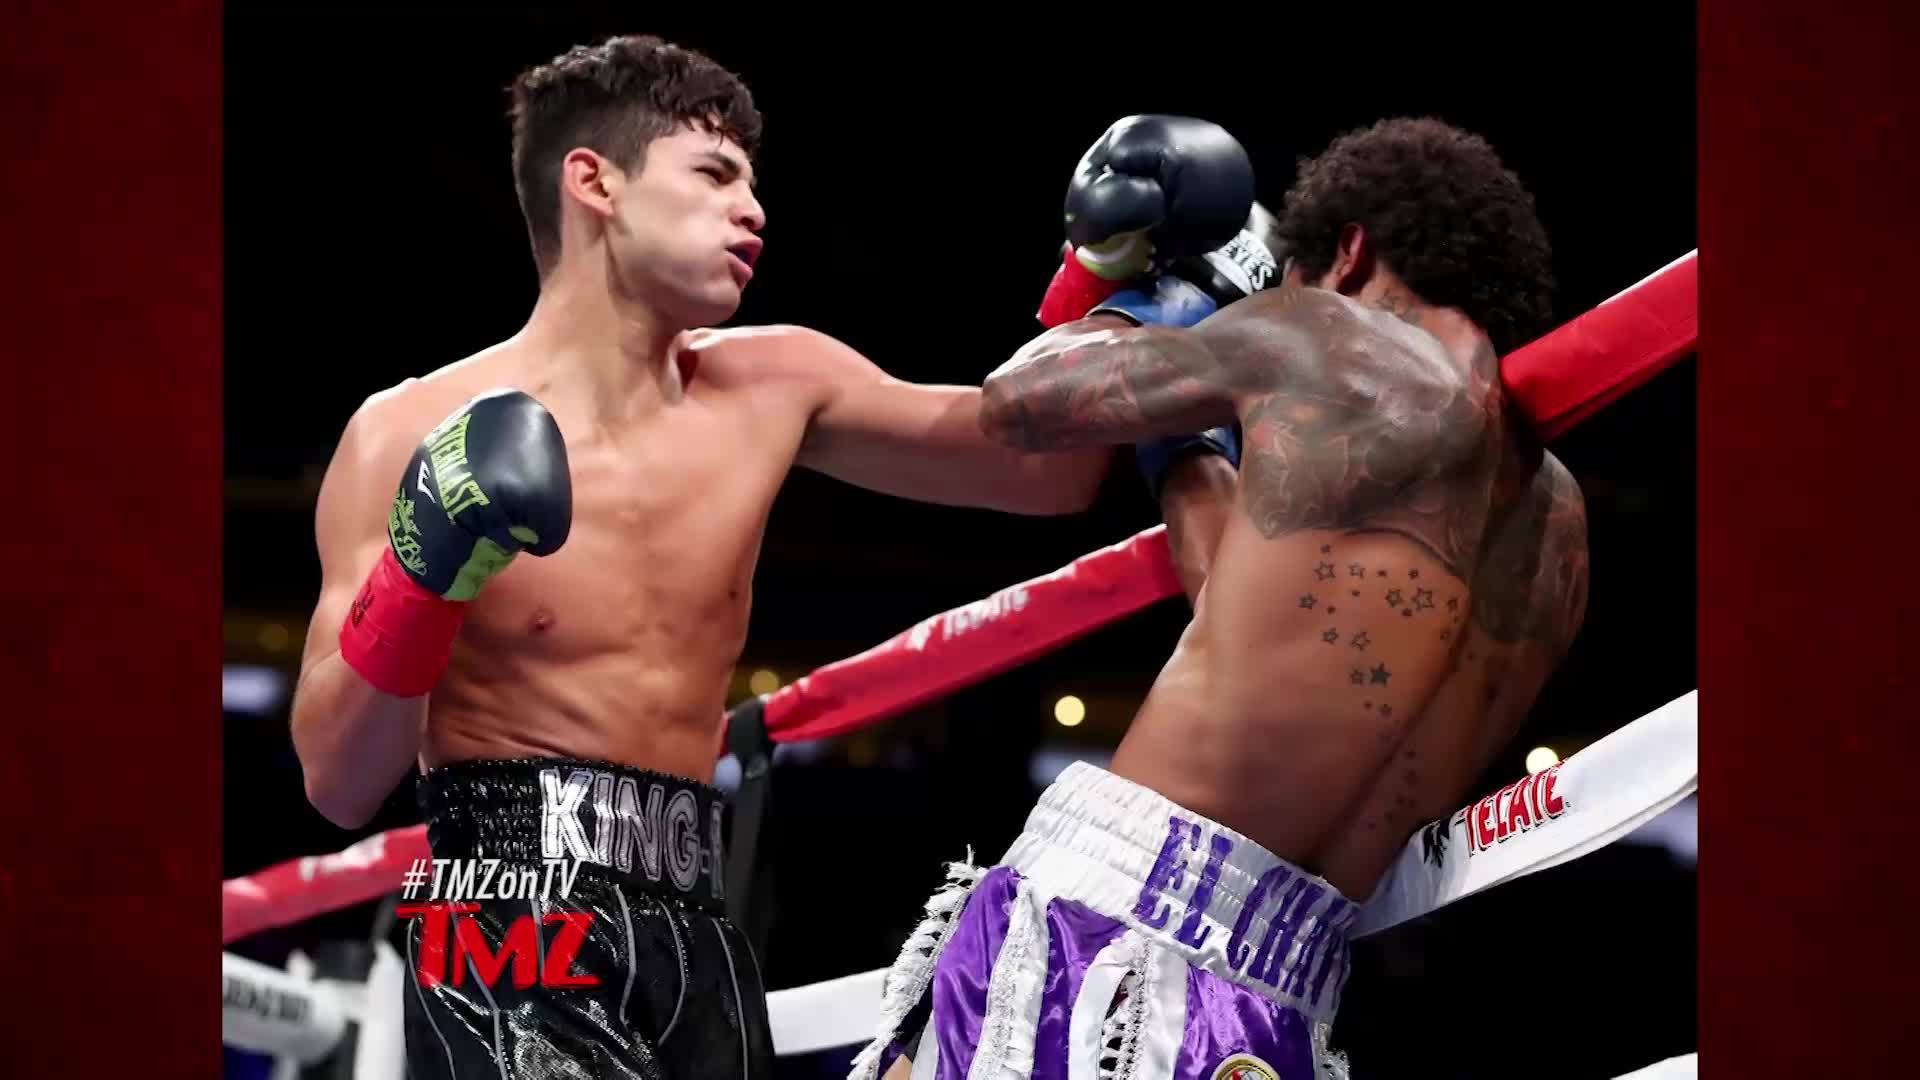 TMZ helps boxing superstar Ryan Garcia get the attention of A-list celebrity, Selena Gomez. Check it out!